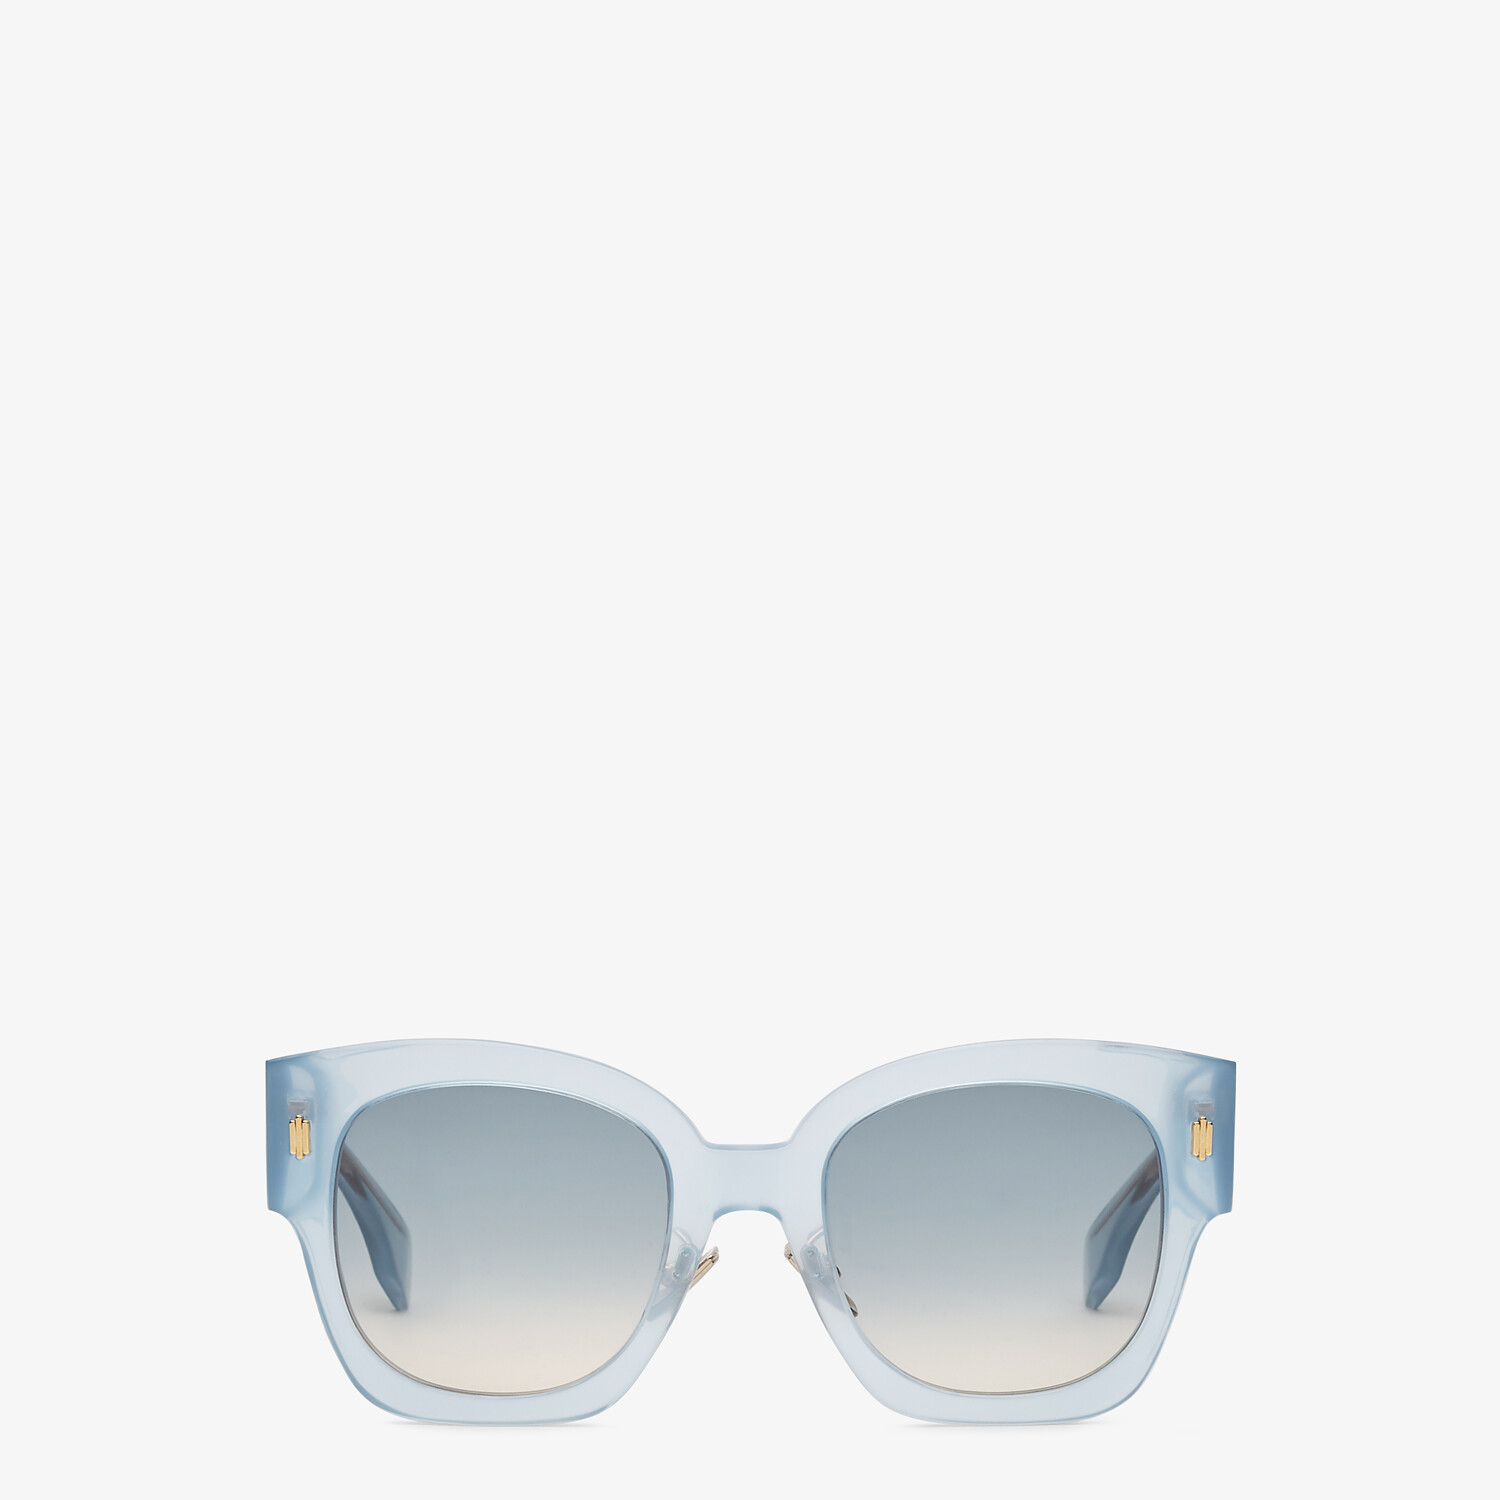 FENDI FENDI ROMA - Light blue acetate sunglasses - view 1 detail